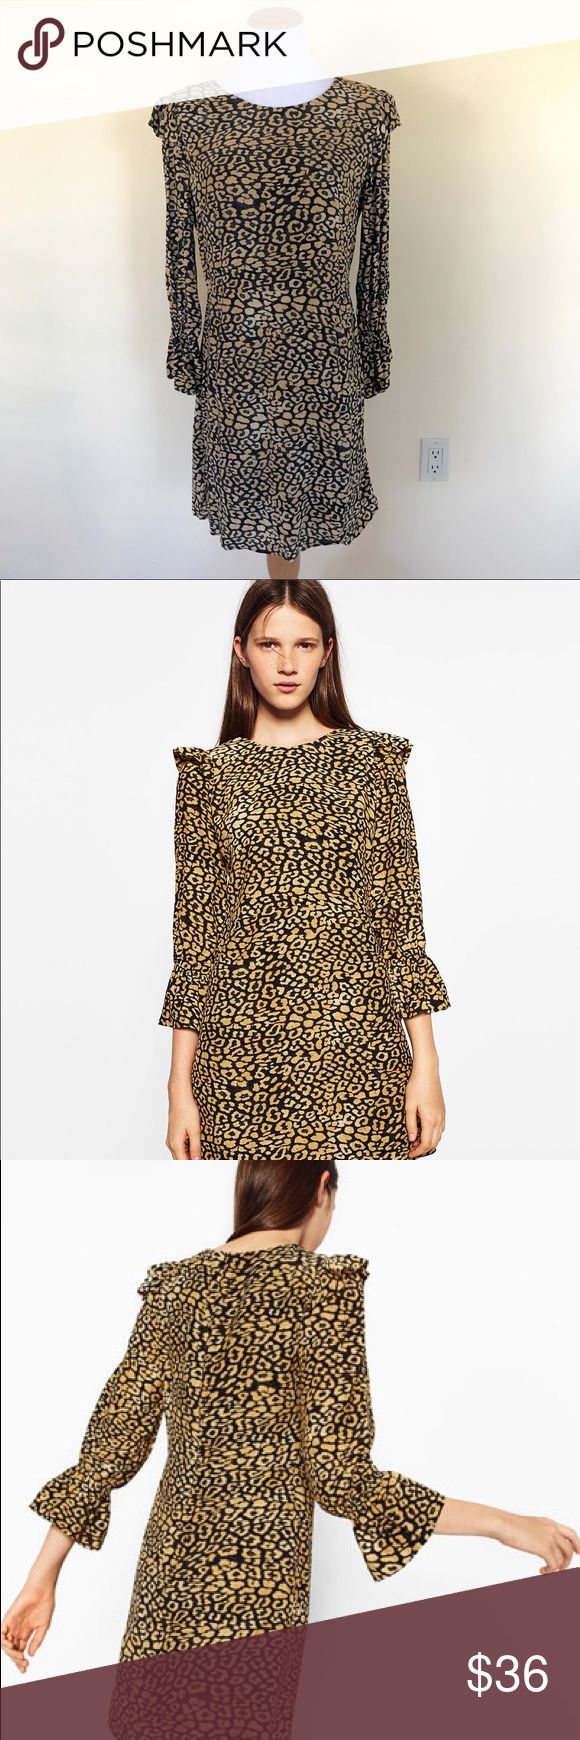 Zara Leopard Cheetah Print Ruffle Sleeve Dress Super cute dress from Zara! Animal print with ruffle details and bell sleeves. No flaws on the dress but the Zara label has been cut out. Size XL. Check out my closet for bundles! Zara Dresses